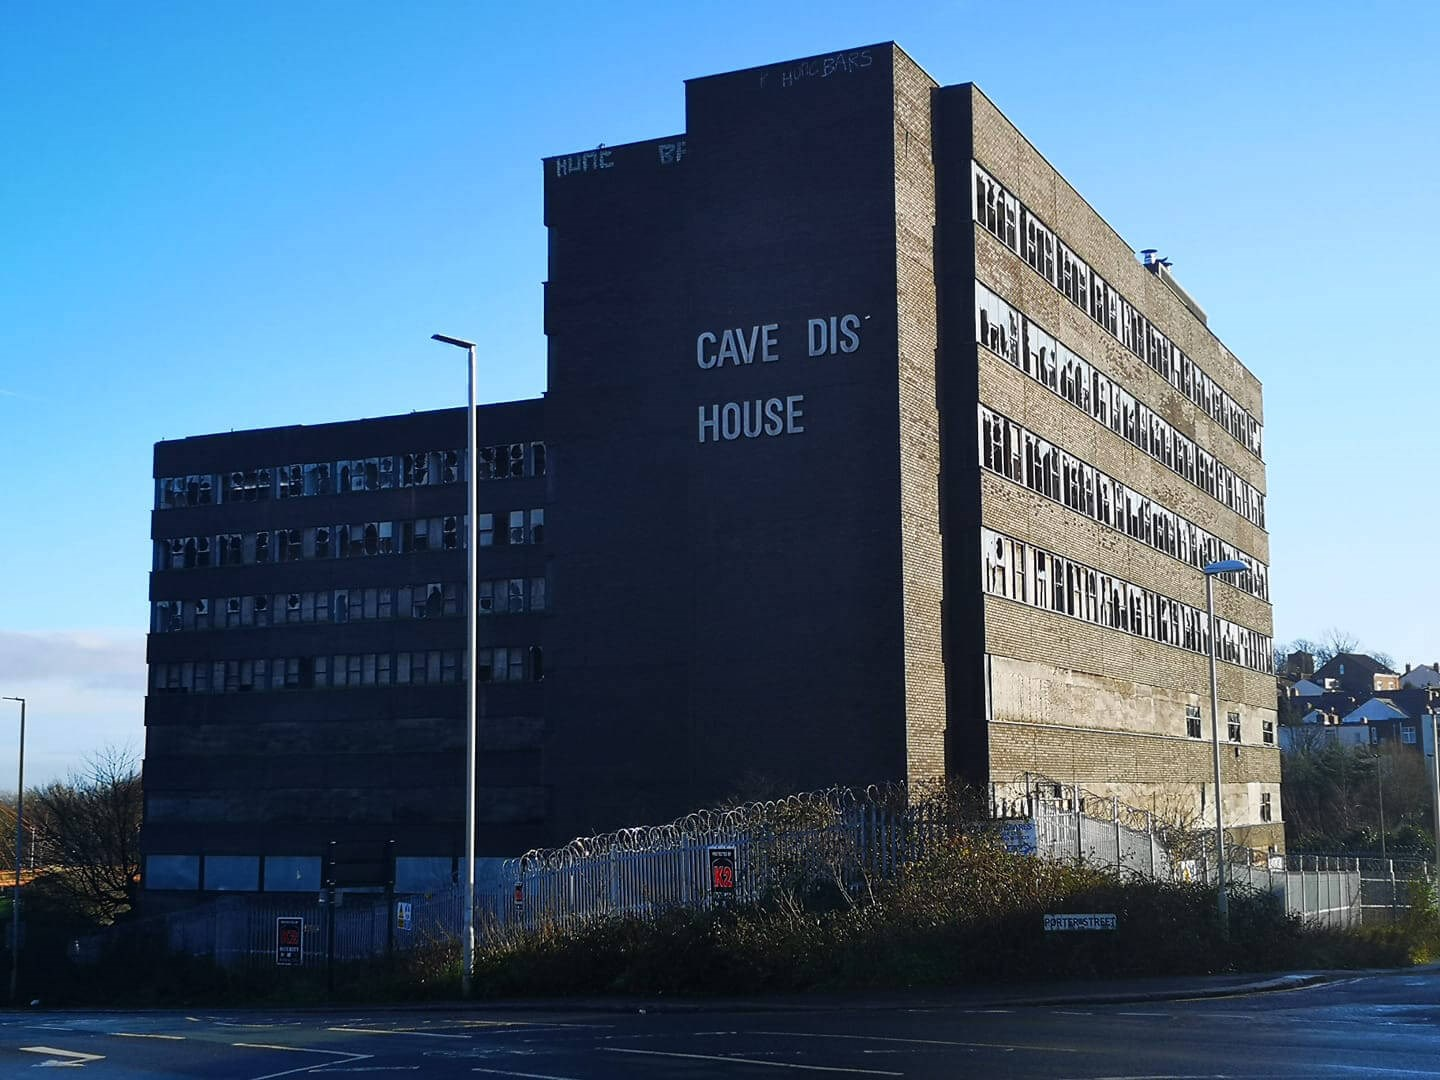 Funding approved to demolish Cavendish House